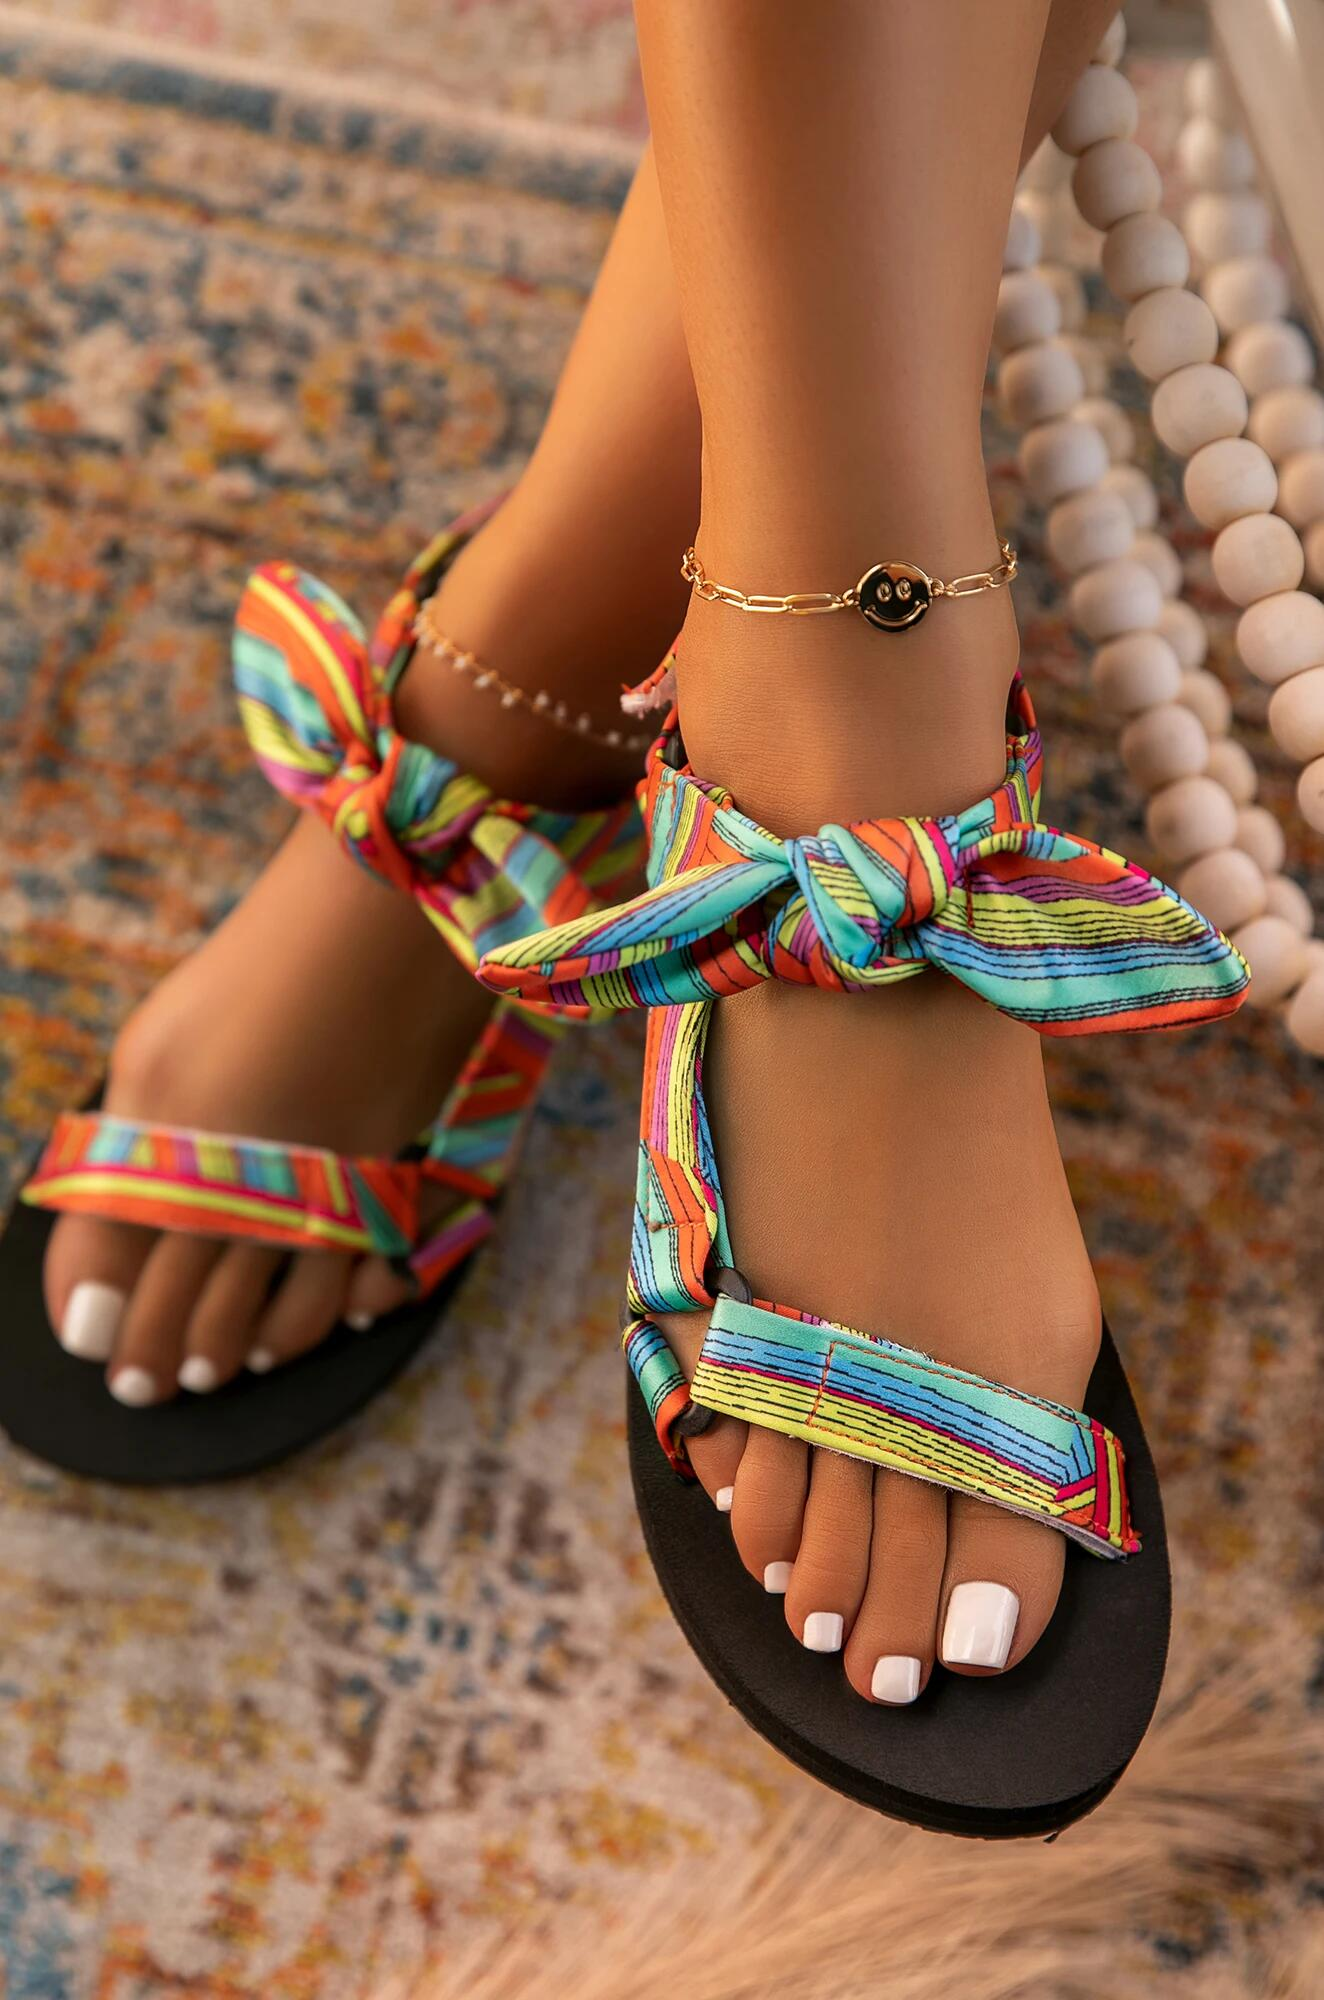 New Women Sandals Color Flat Casual Lace Up Bow Shoes for Ladies Summer Fashion 2021 Outdoor Leopard